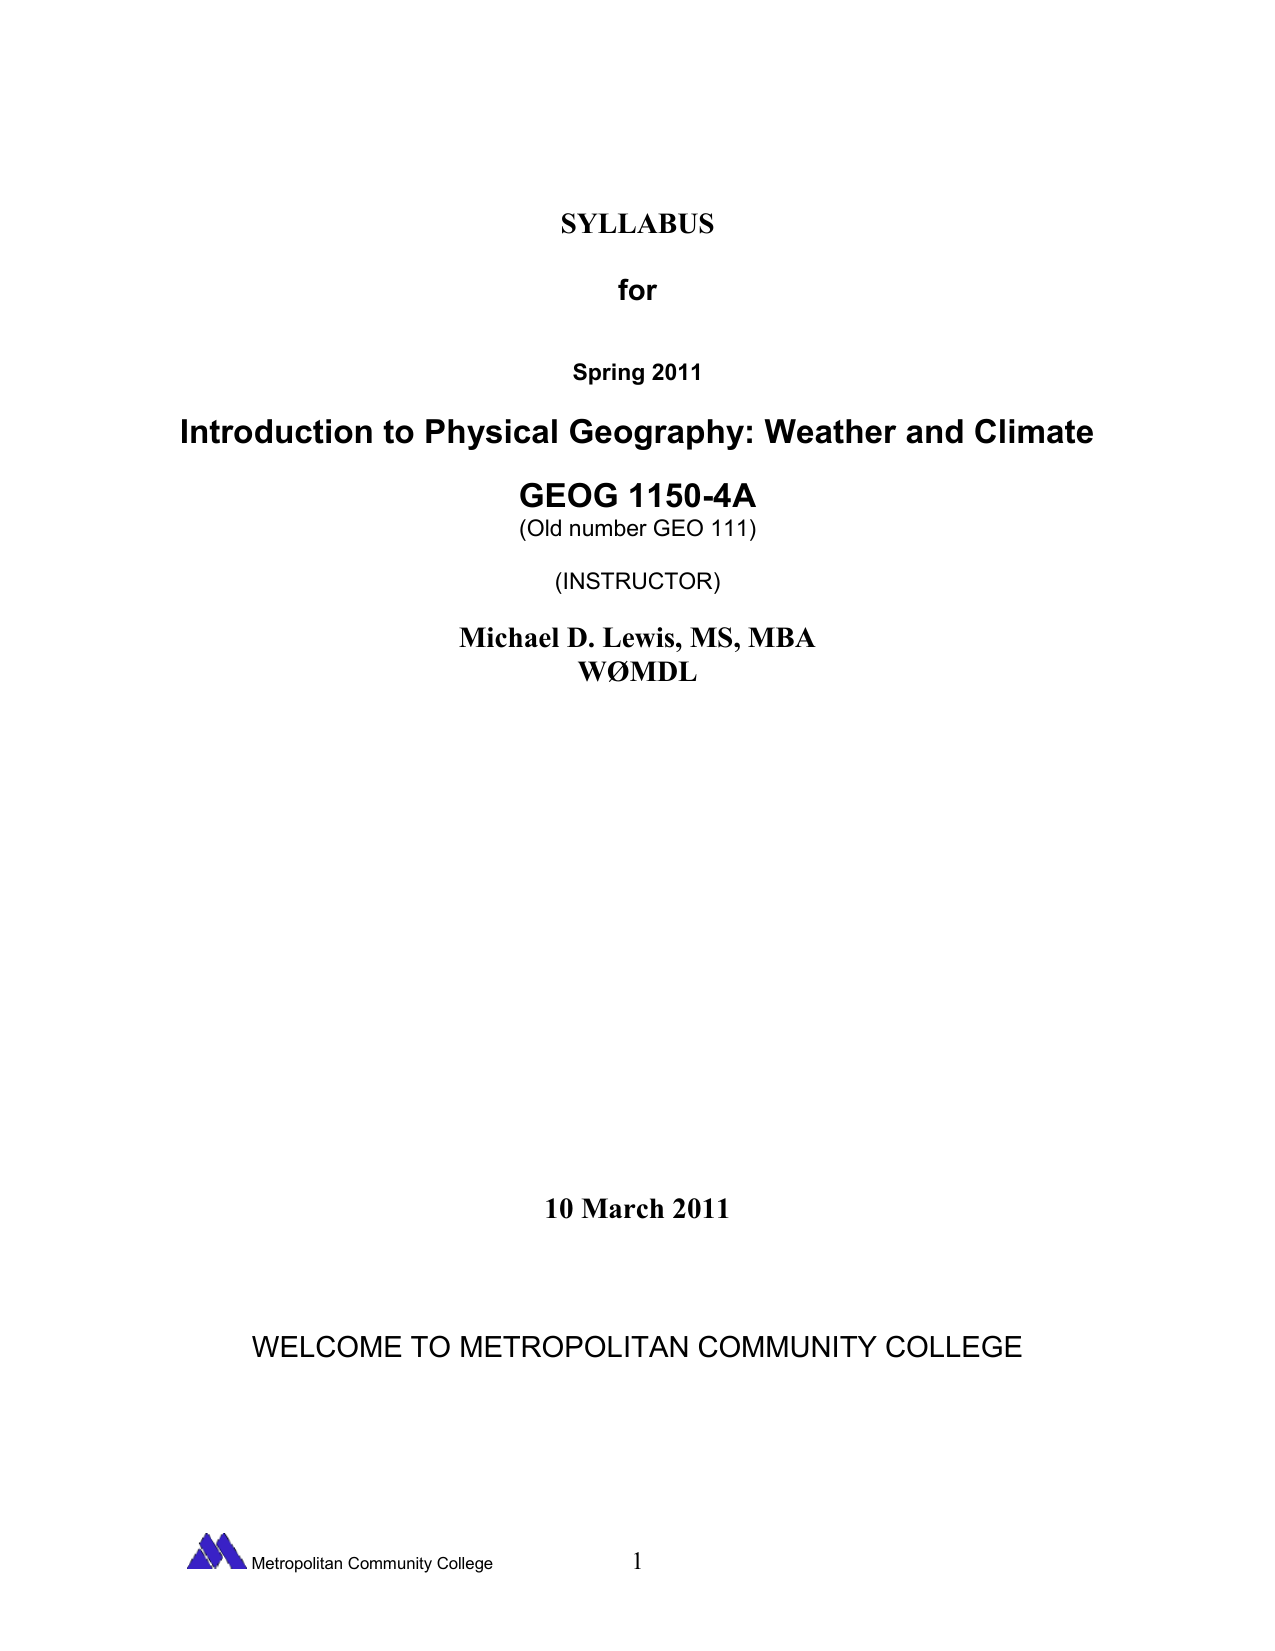 Introduction to Physical Geography: Weather and Climate GEOG 1150-4A  SYLLABUS